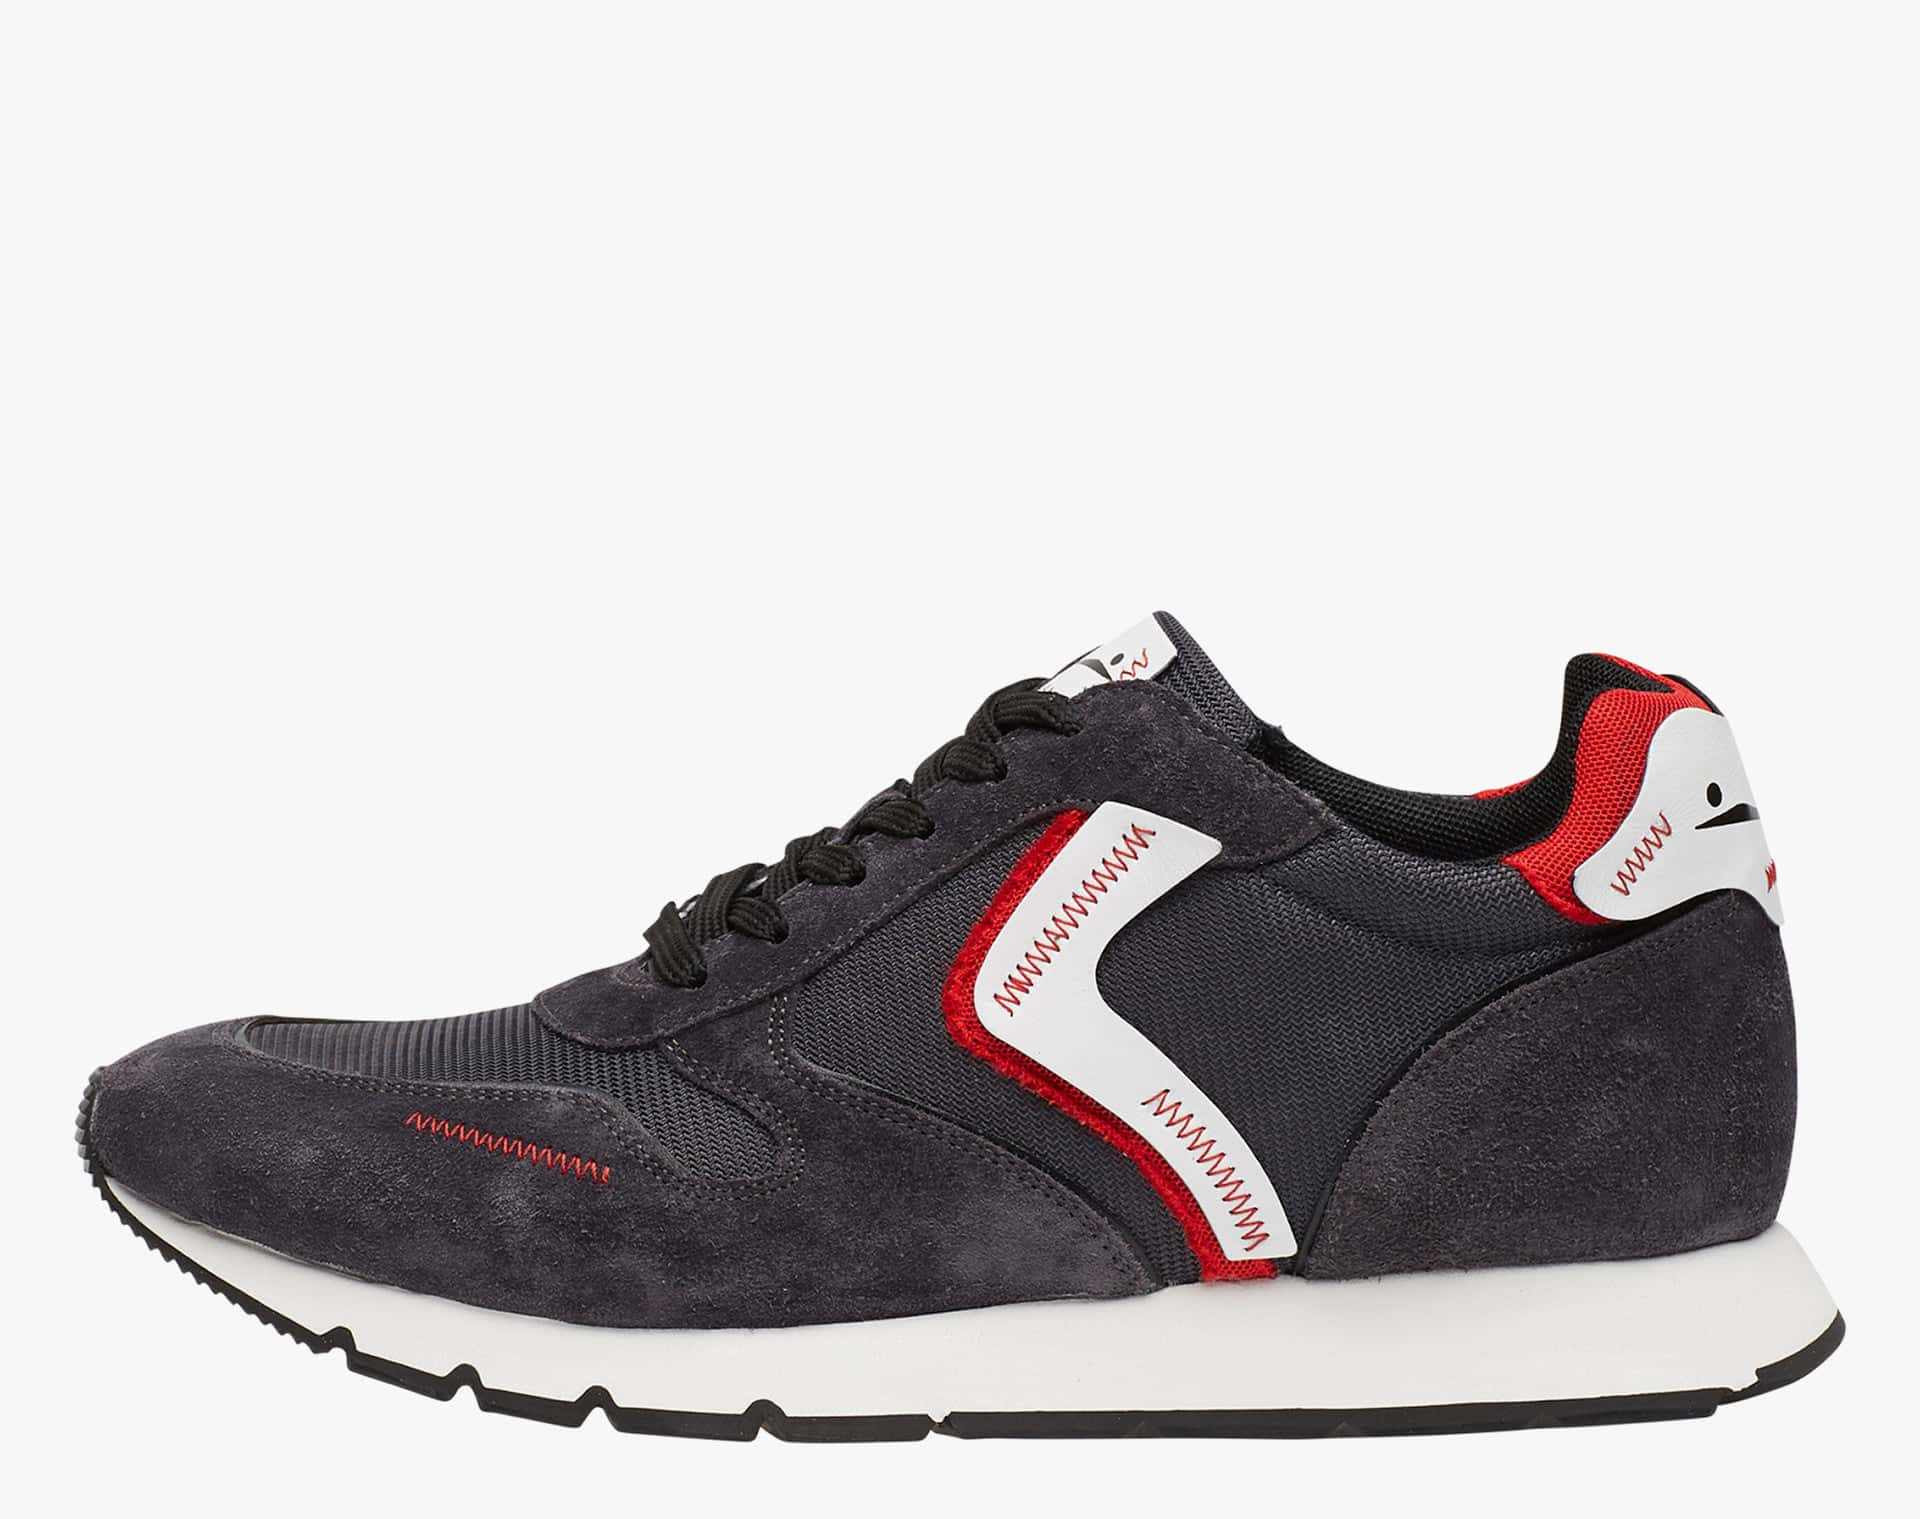 LIAM UNFINISHED - Sneakers in leather and Cordura - CHARCOAL GREY-RED